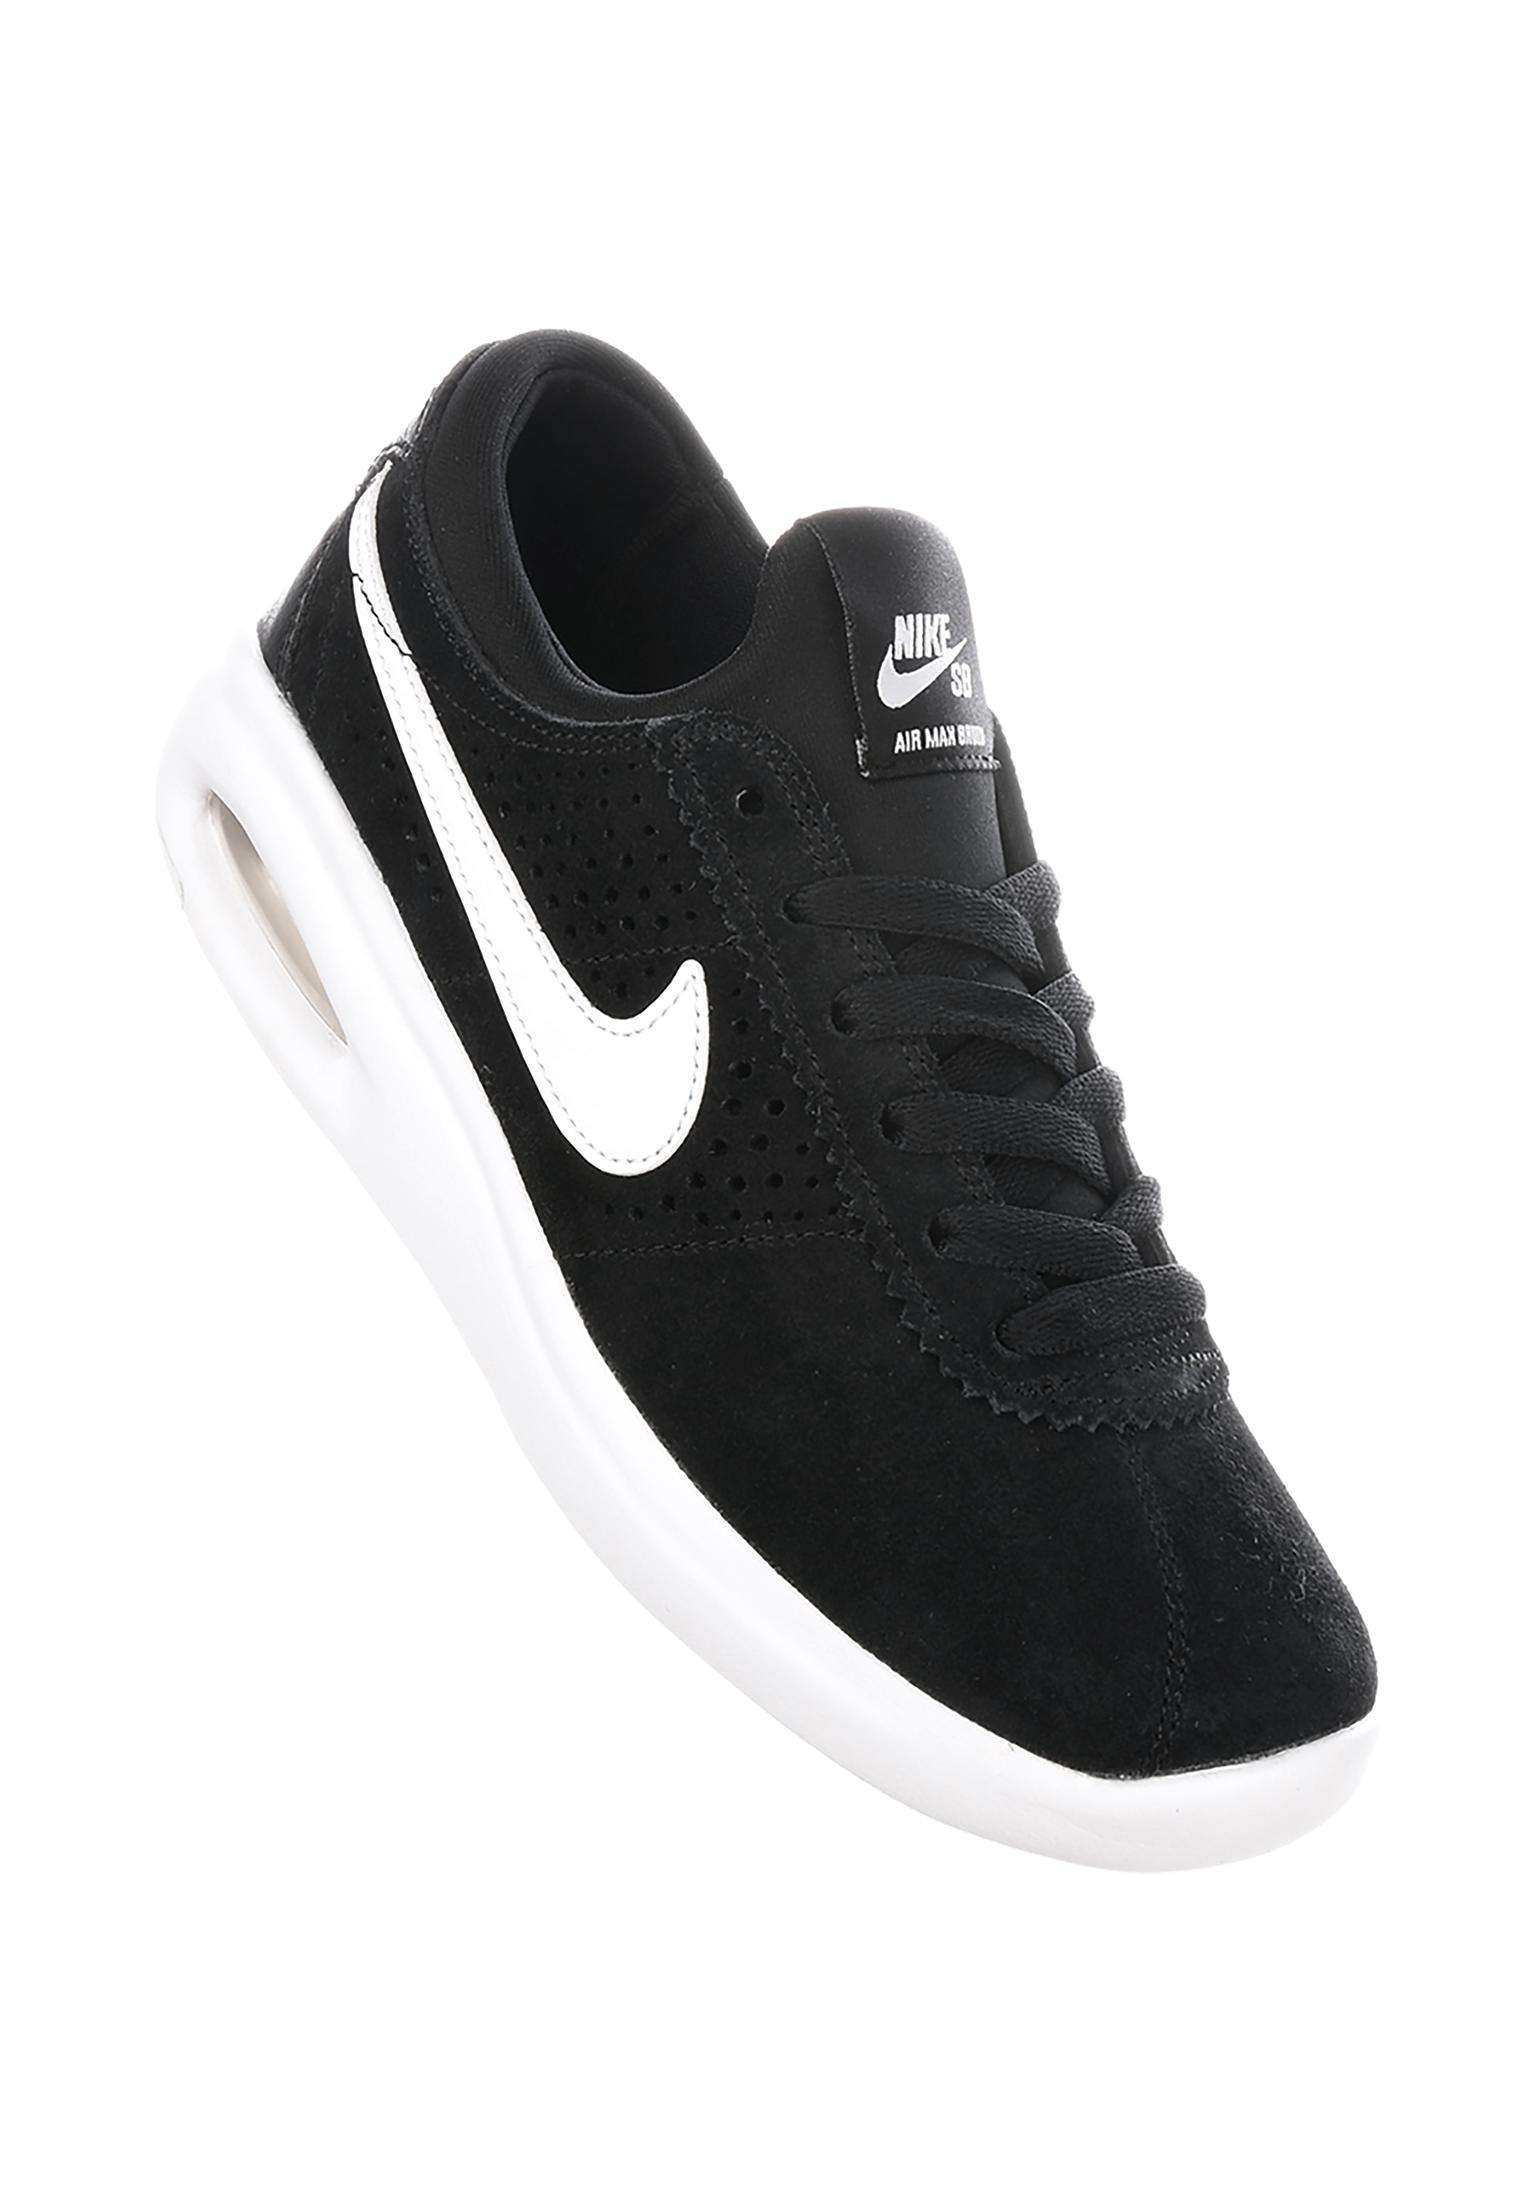 best loved b925f 48ba2 Air Max Bruin Vapor GS Nike SB Tutte le scarpe in black-white da Bambini   Titus